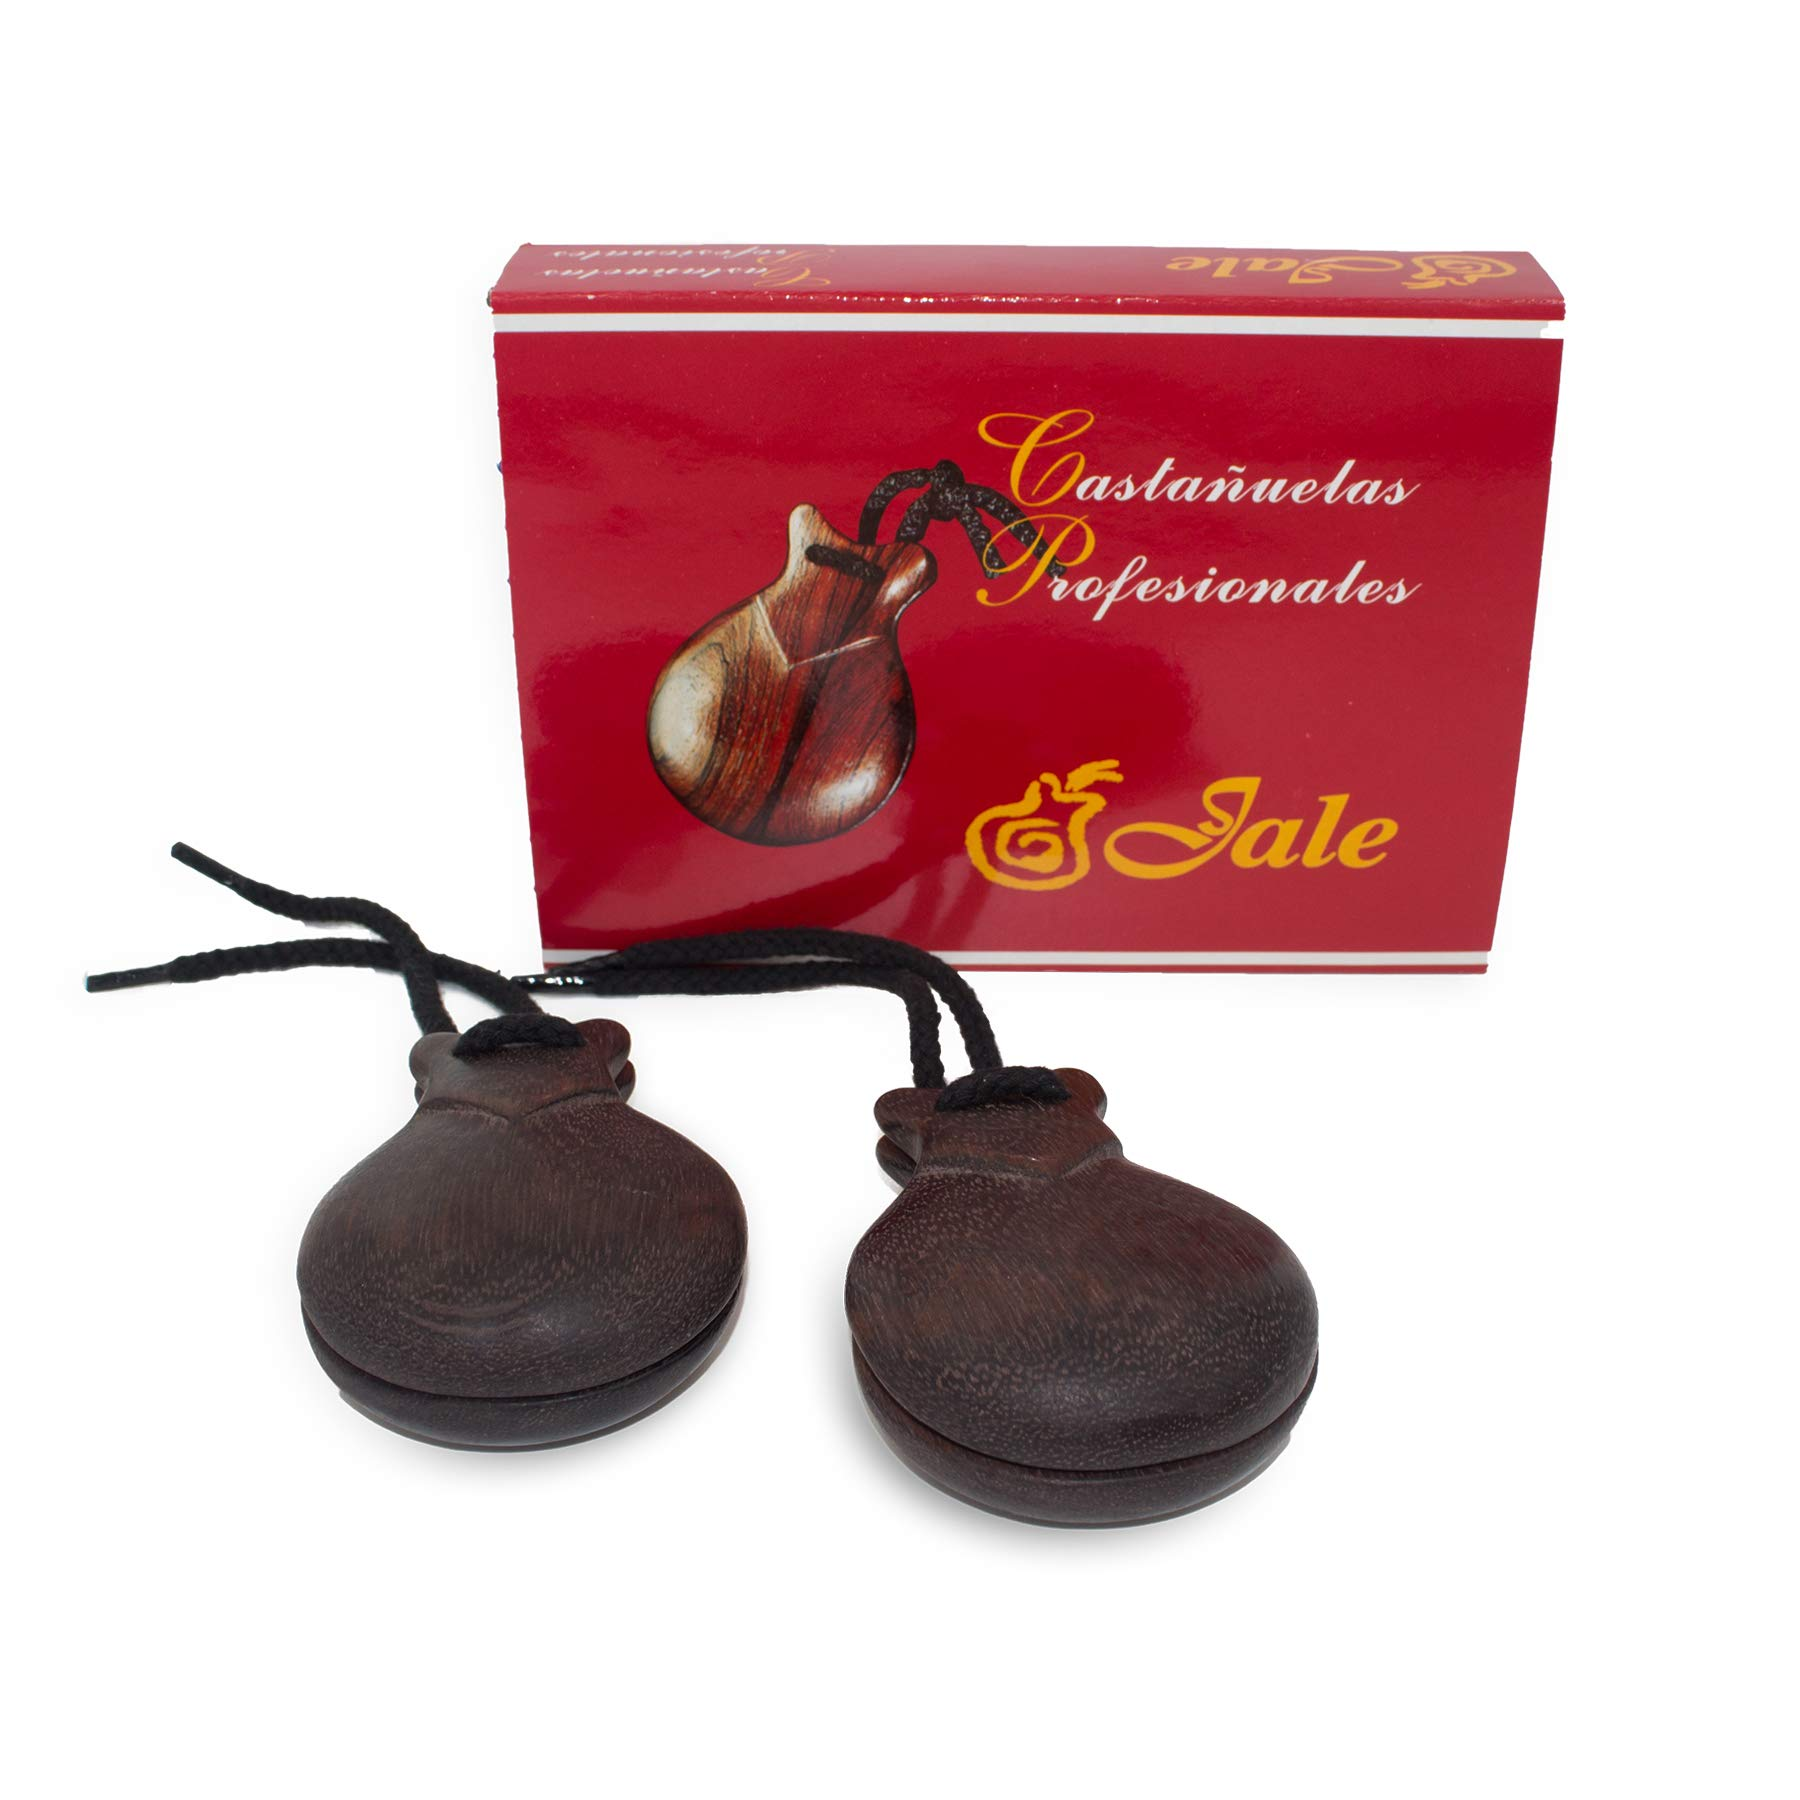 Ole Ole Flamenco Castanets Jale Wood Professional Authentic Brown Granadillo Wood Flamenco Spanish Castanets Castañuelas de Madera Granadillo Marron Size T-6 Woman Adult by Jale Castanets